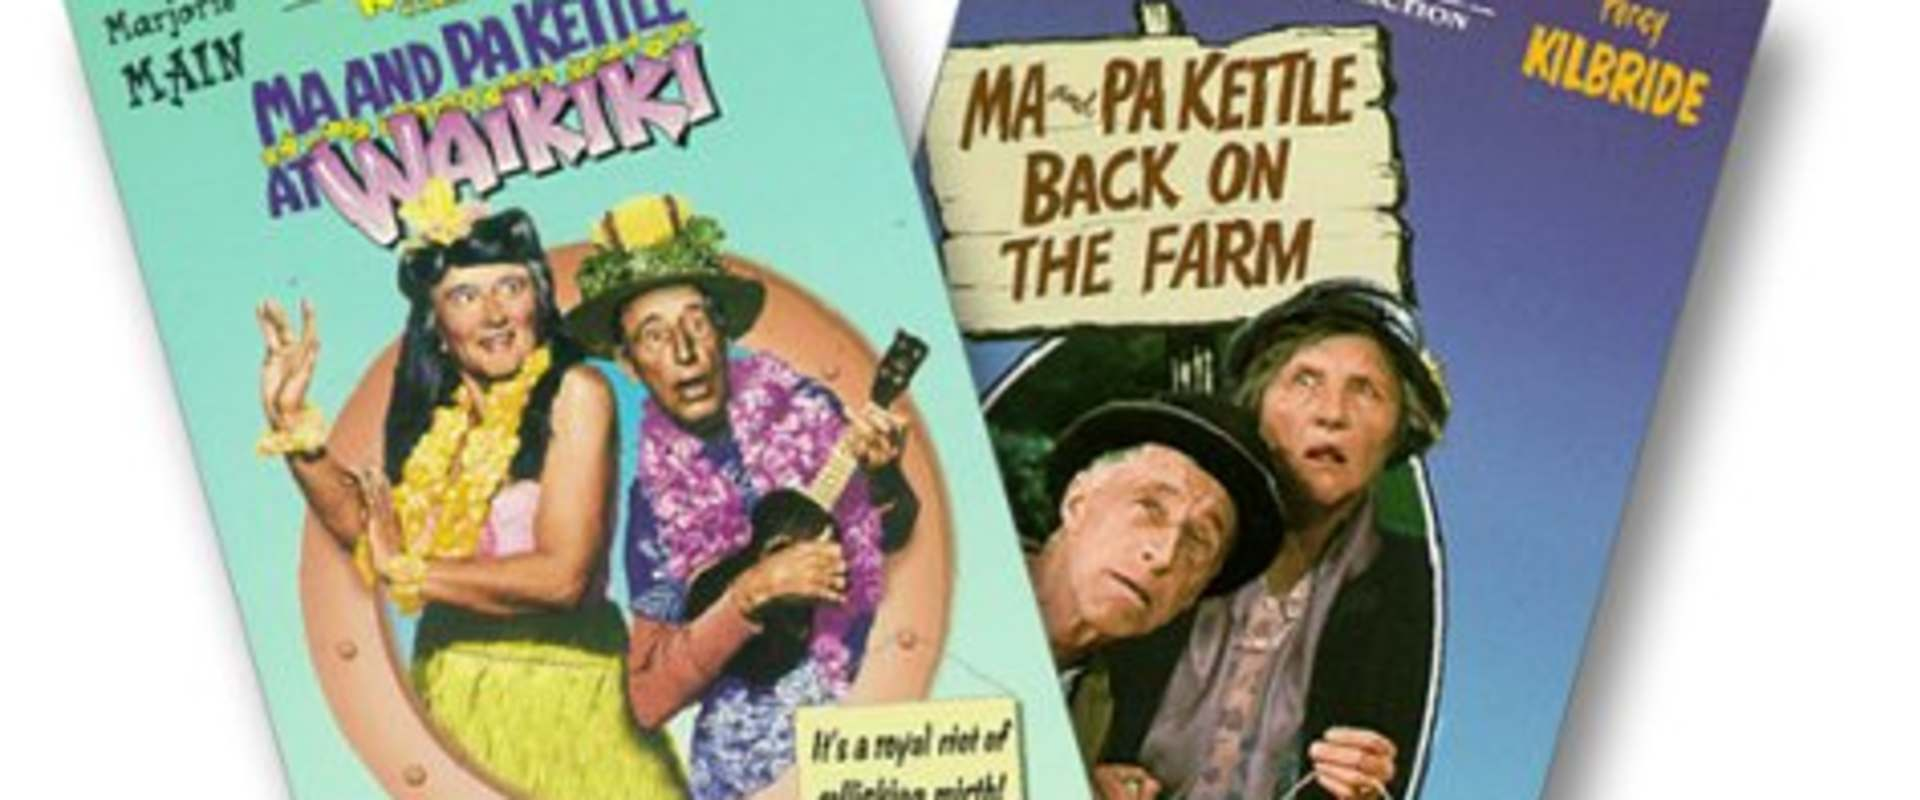 Ma and Pa Kettle Back on the Farm background 2